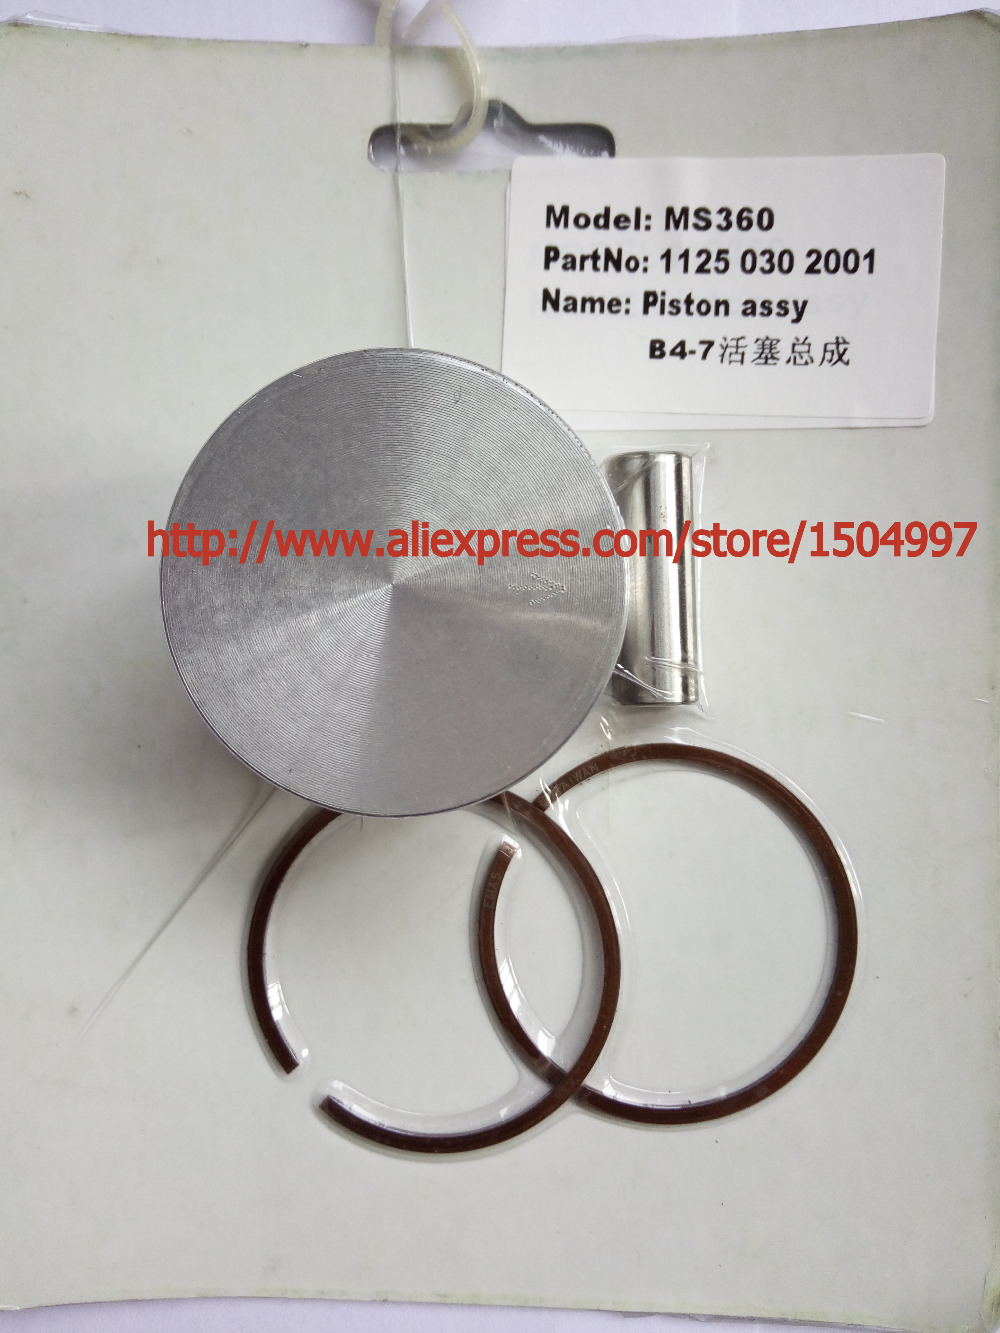 Piston Kit With Pin Rings Clips Assy Set Kit For  Kolben Fur 036 MS360 MS 360 48mm Piston